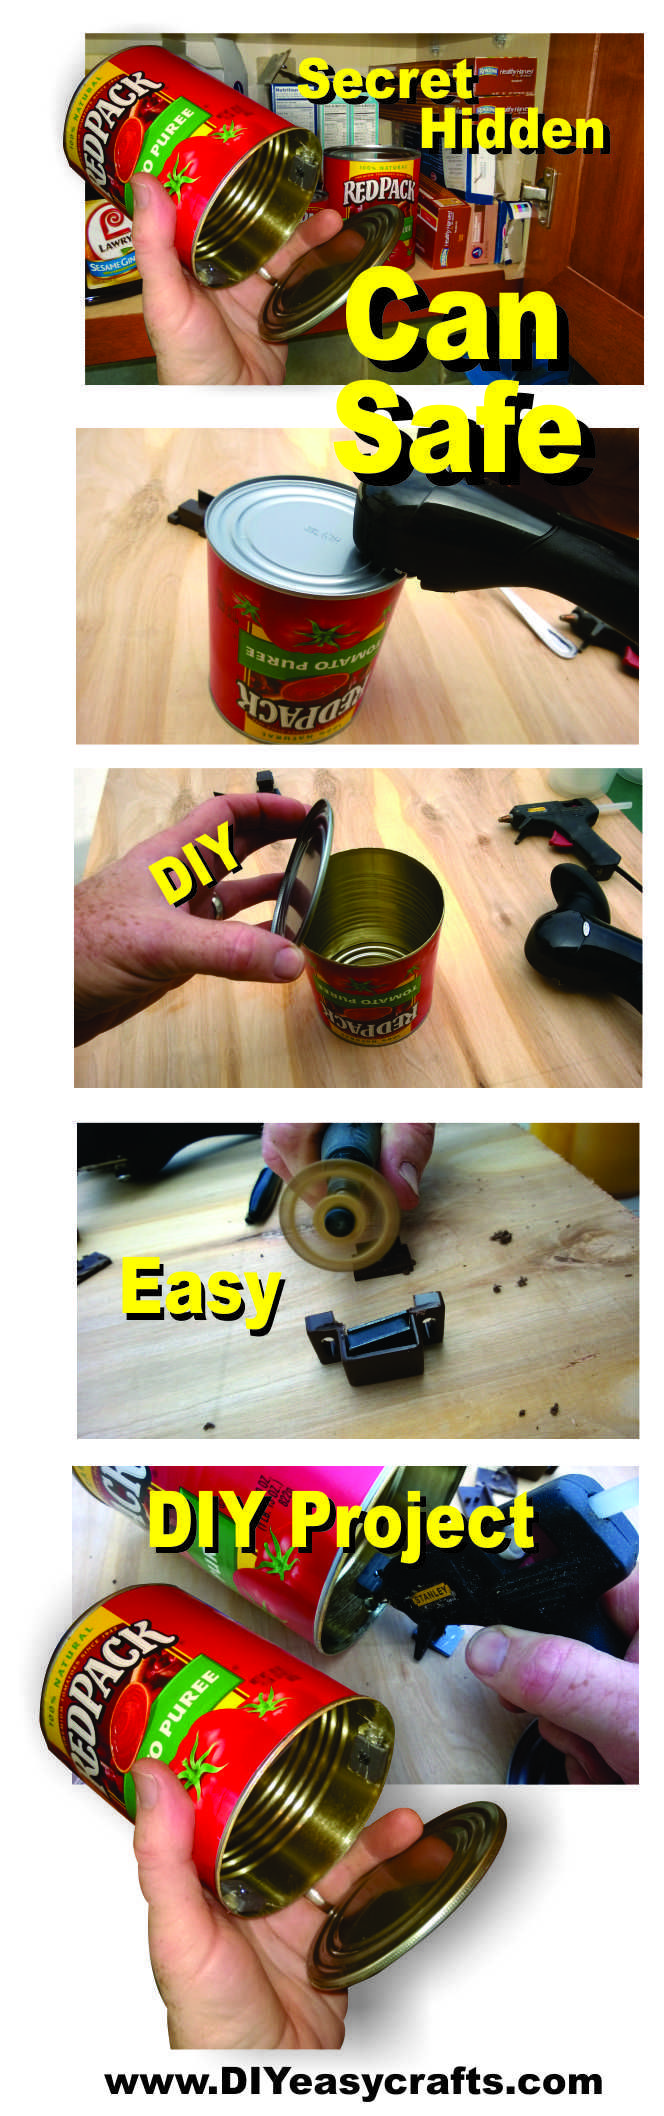 How to Make a easy DIY Secret Hidden Can Safe.  These hidden compartments make great hiding places for case, jewelry or even prescription medications. The look like any other can in the cabinet, basically hiding your valuables in plain sight. All you need to build this security secret compartment can, is a can of the desired size, a side cutting can opener, three cabinet magnets and a hot glue gun. Check out our other how to projects on the web http://www.diyeasycrafts.com/